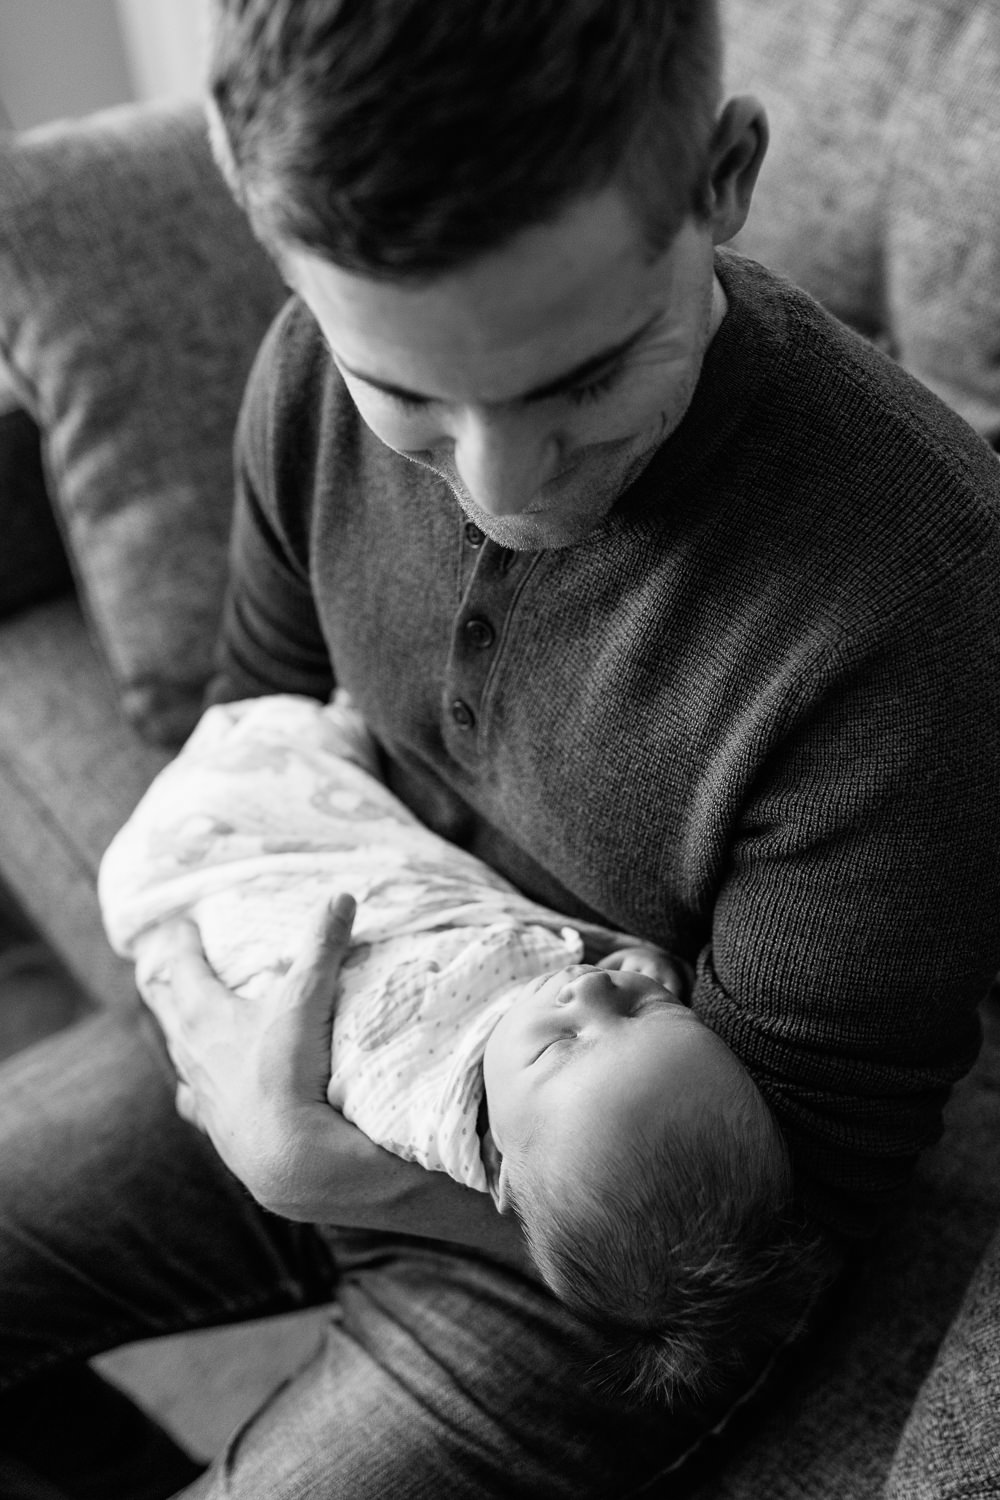 father sitting on couch holding sleeping 2 week old baby boy in his arms, looking at son - Barrie Lifestyle Photography